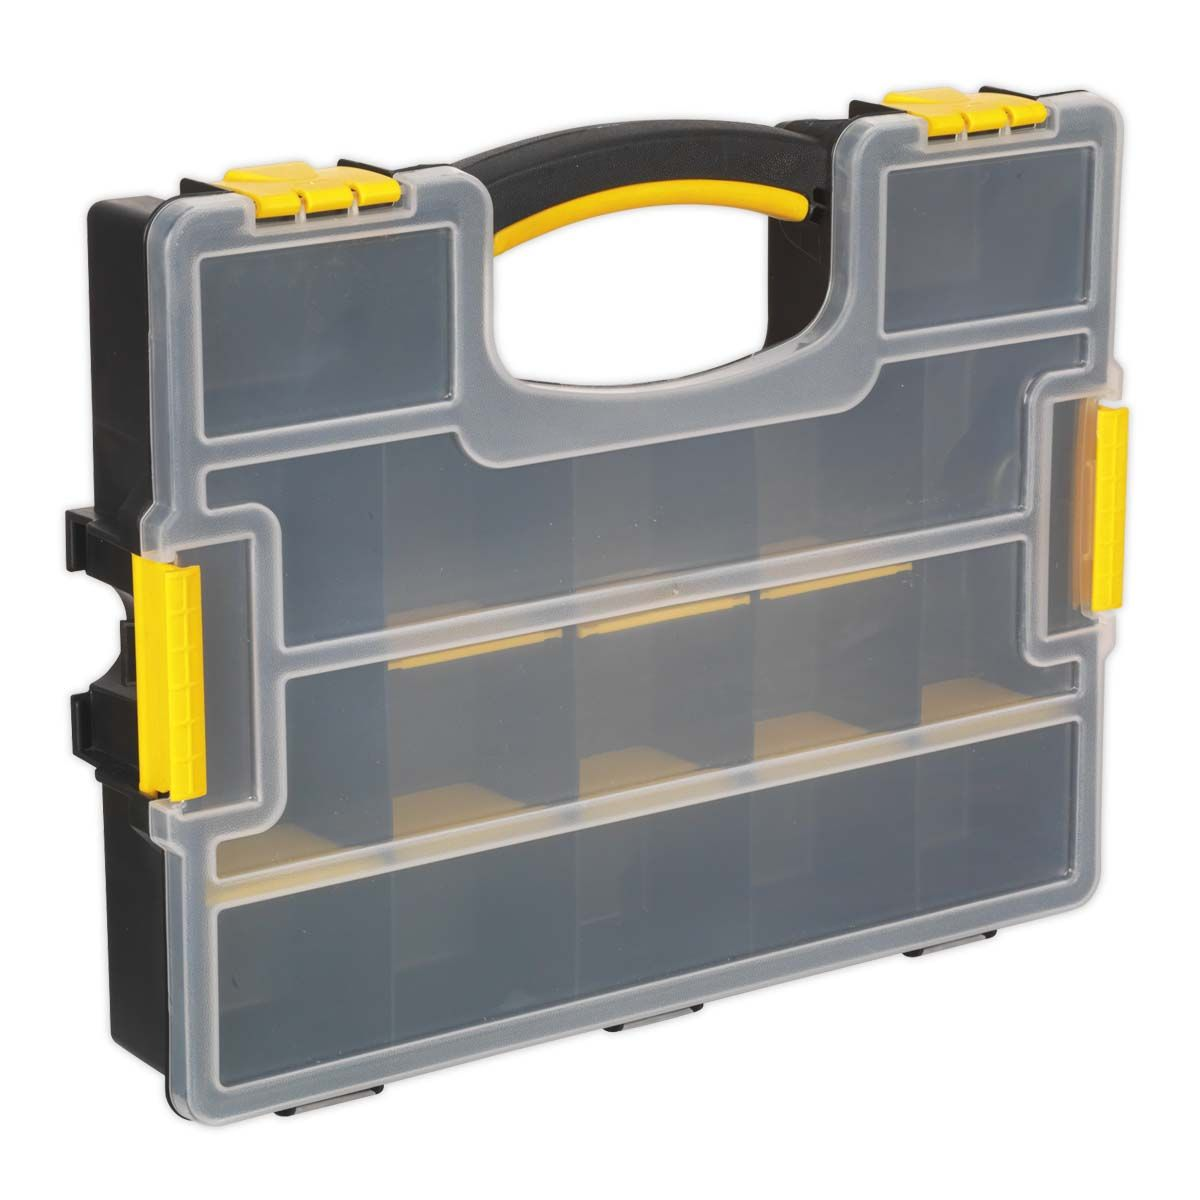 Sealey Parts Storage Case with Removable Compartments - Stackable